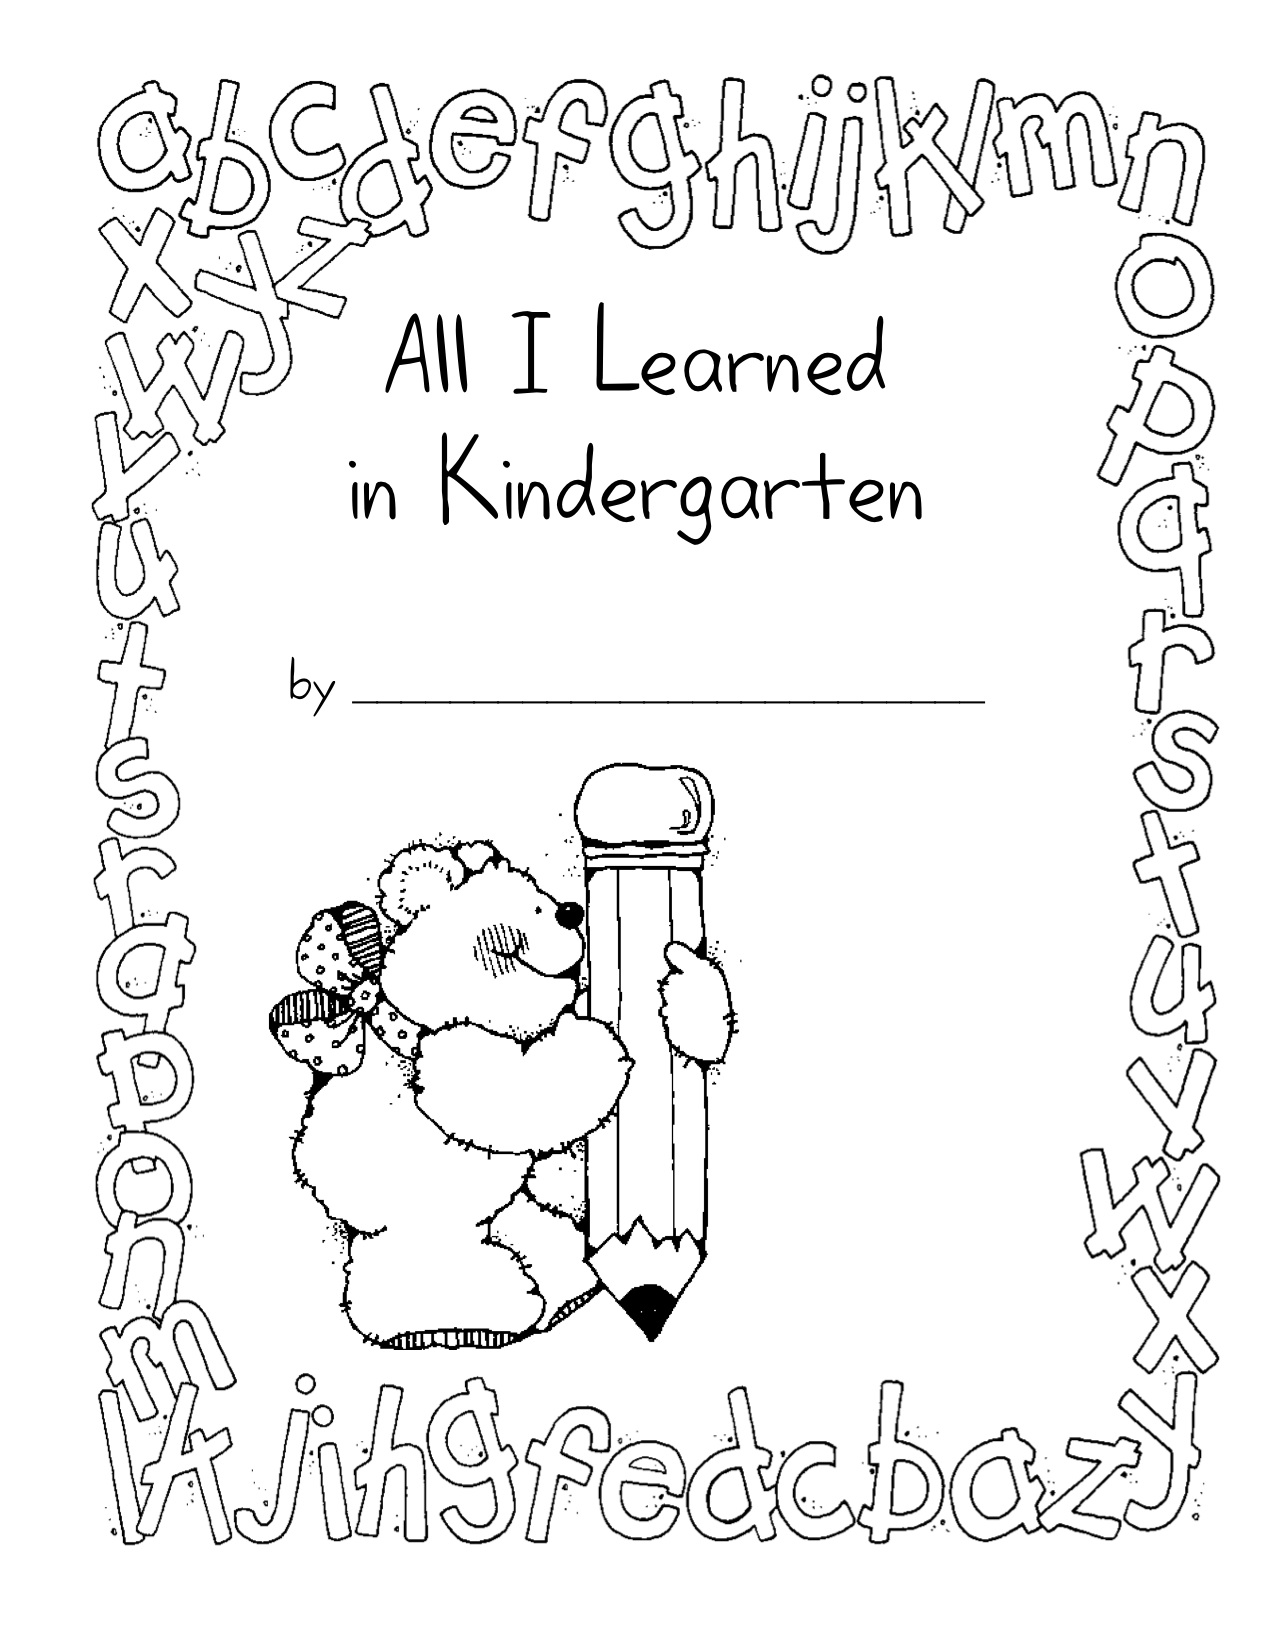 Preschool Memory Book Cover Ideas : All i learned in kindergarten nana